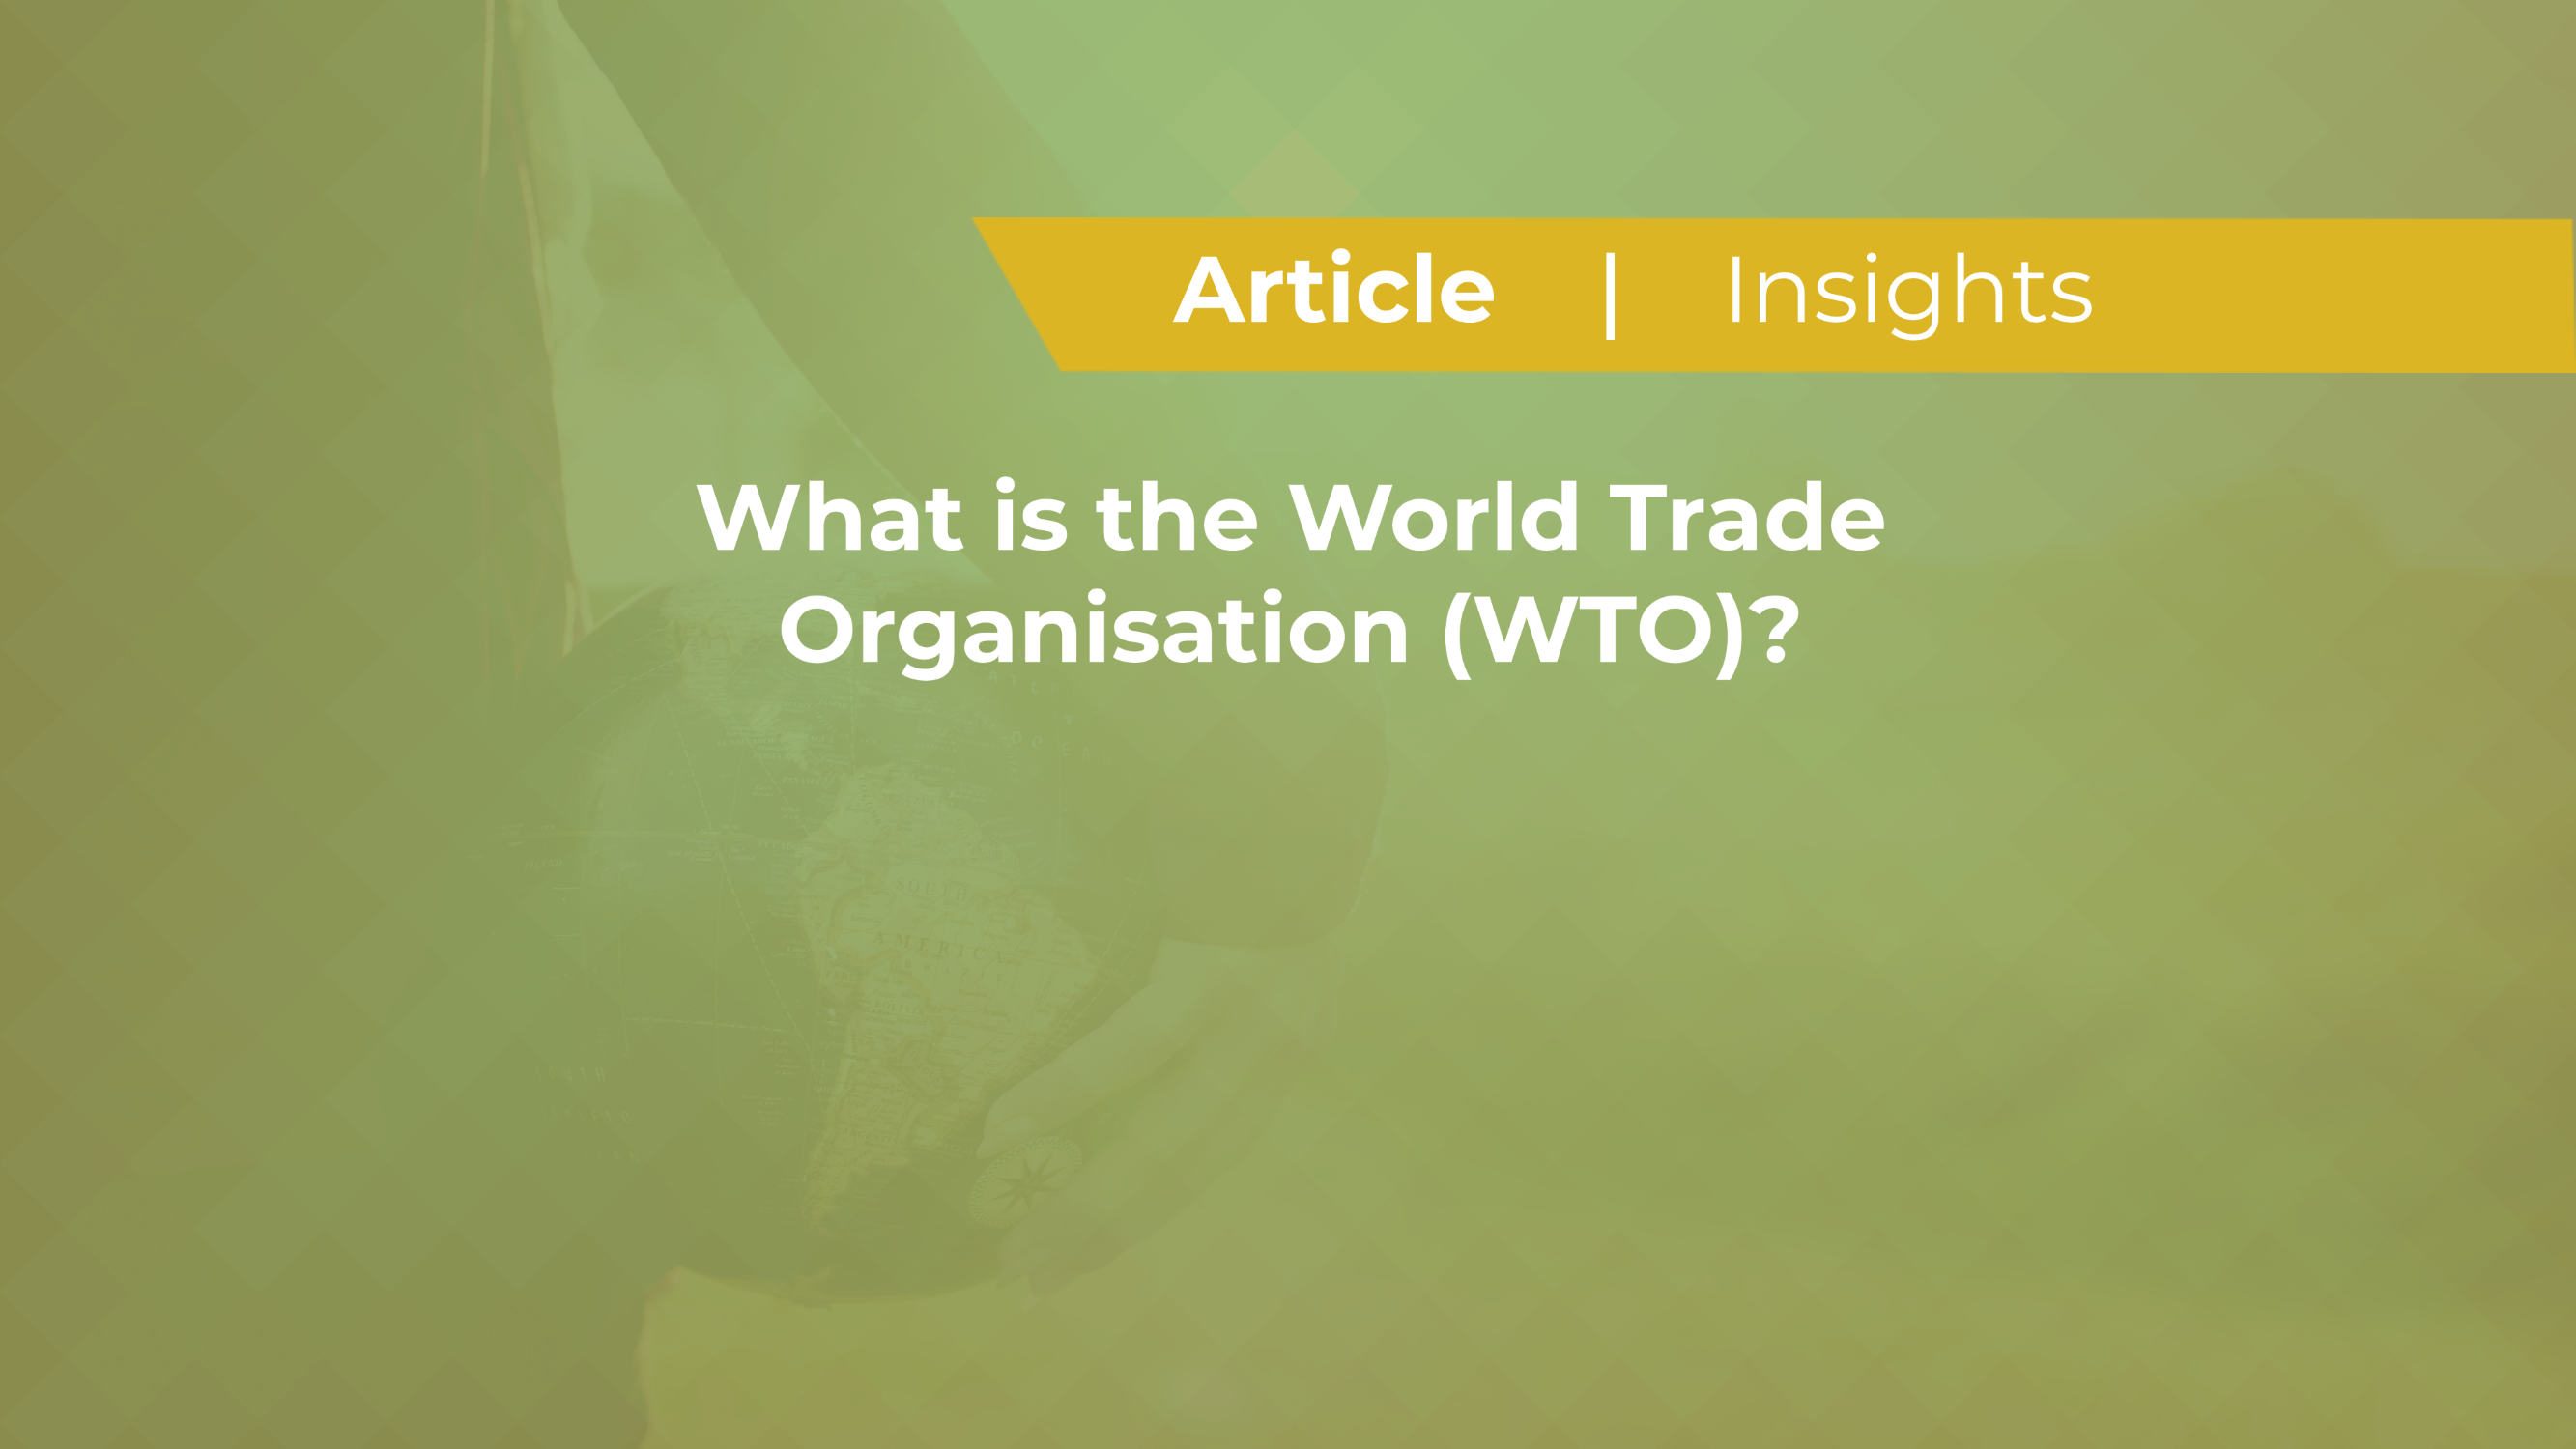 What is the World Trade Organisation